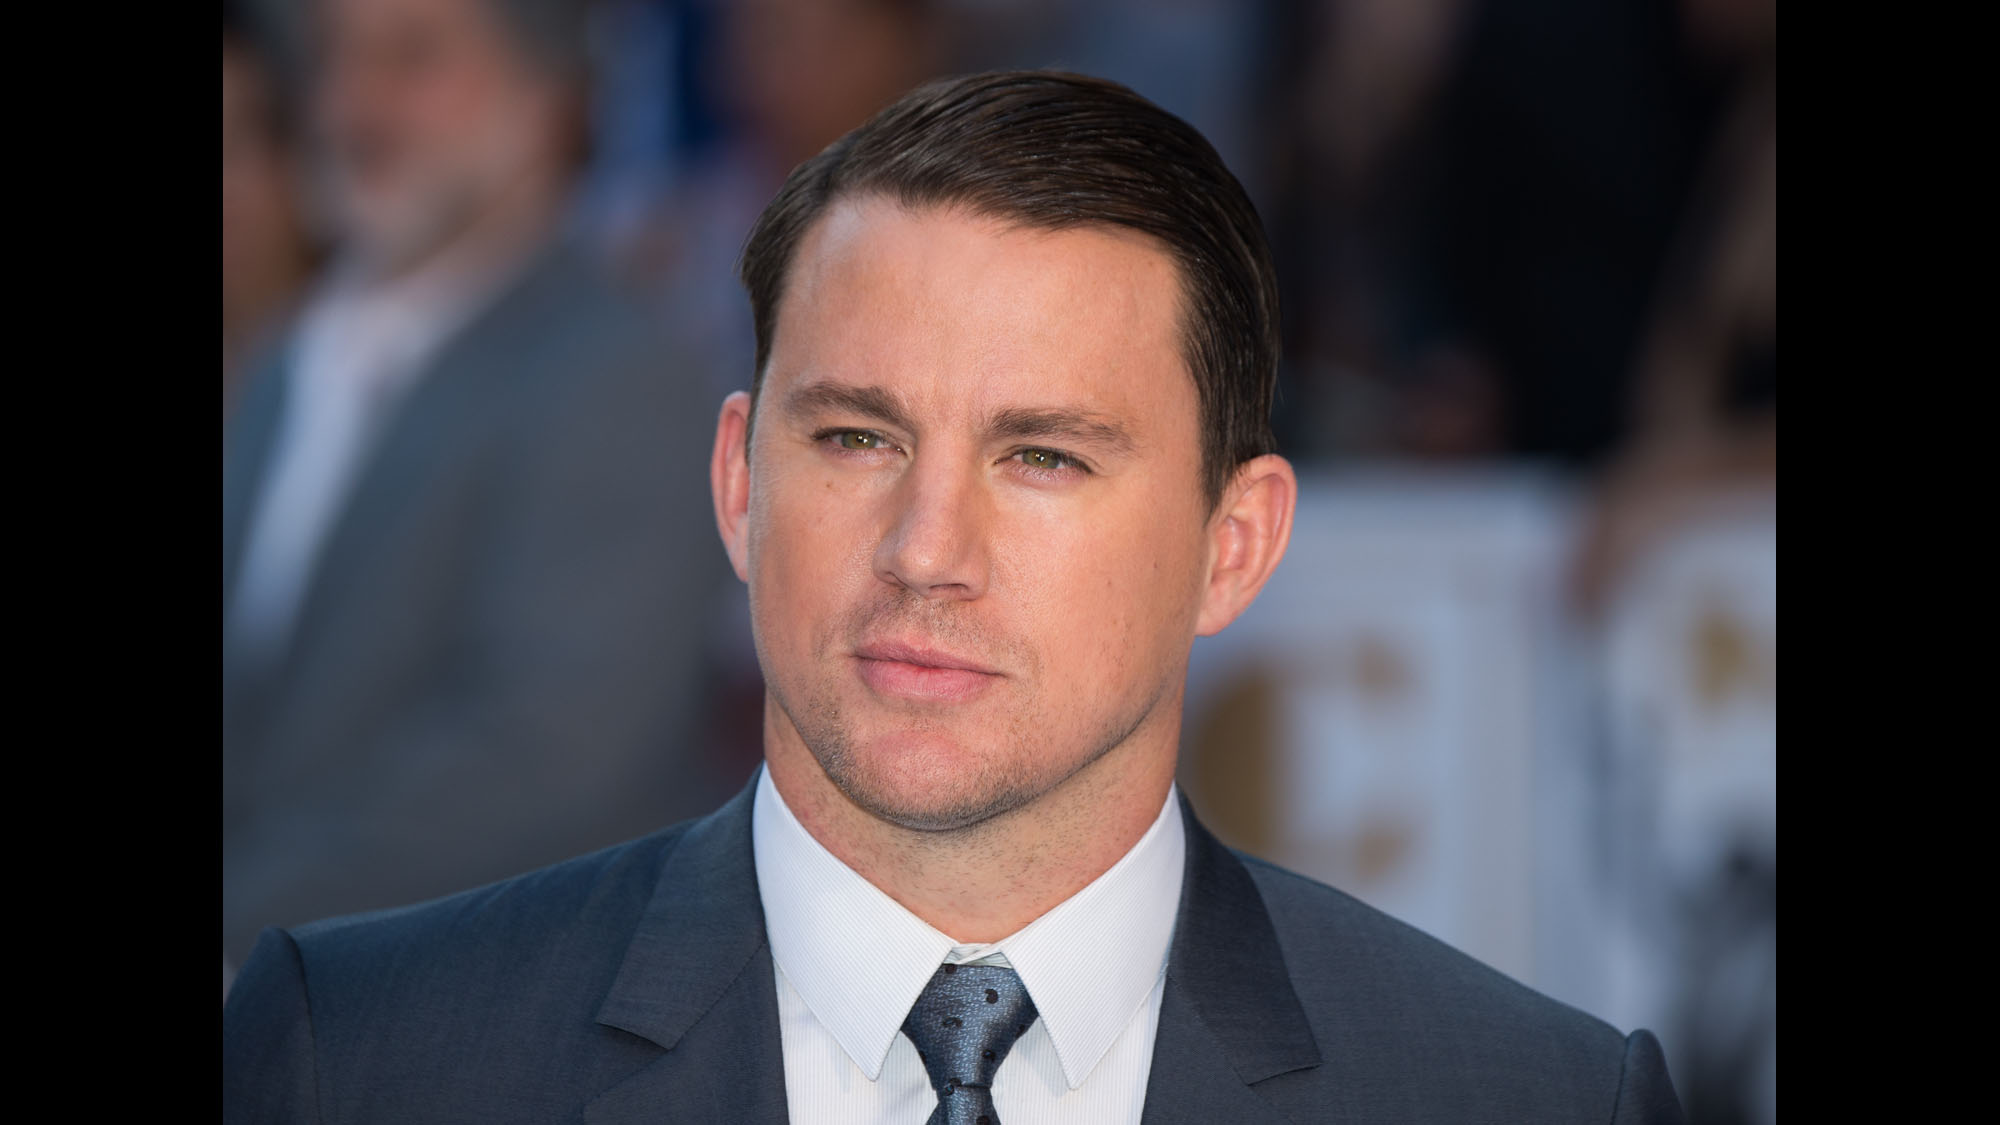 Channing Tatum shares touching post about his daughter